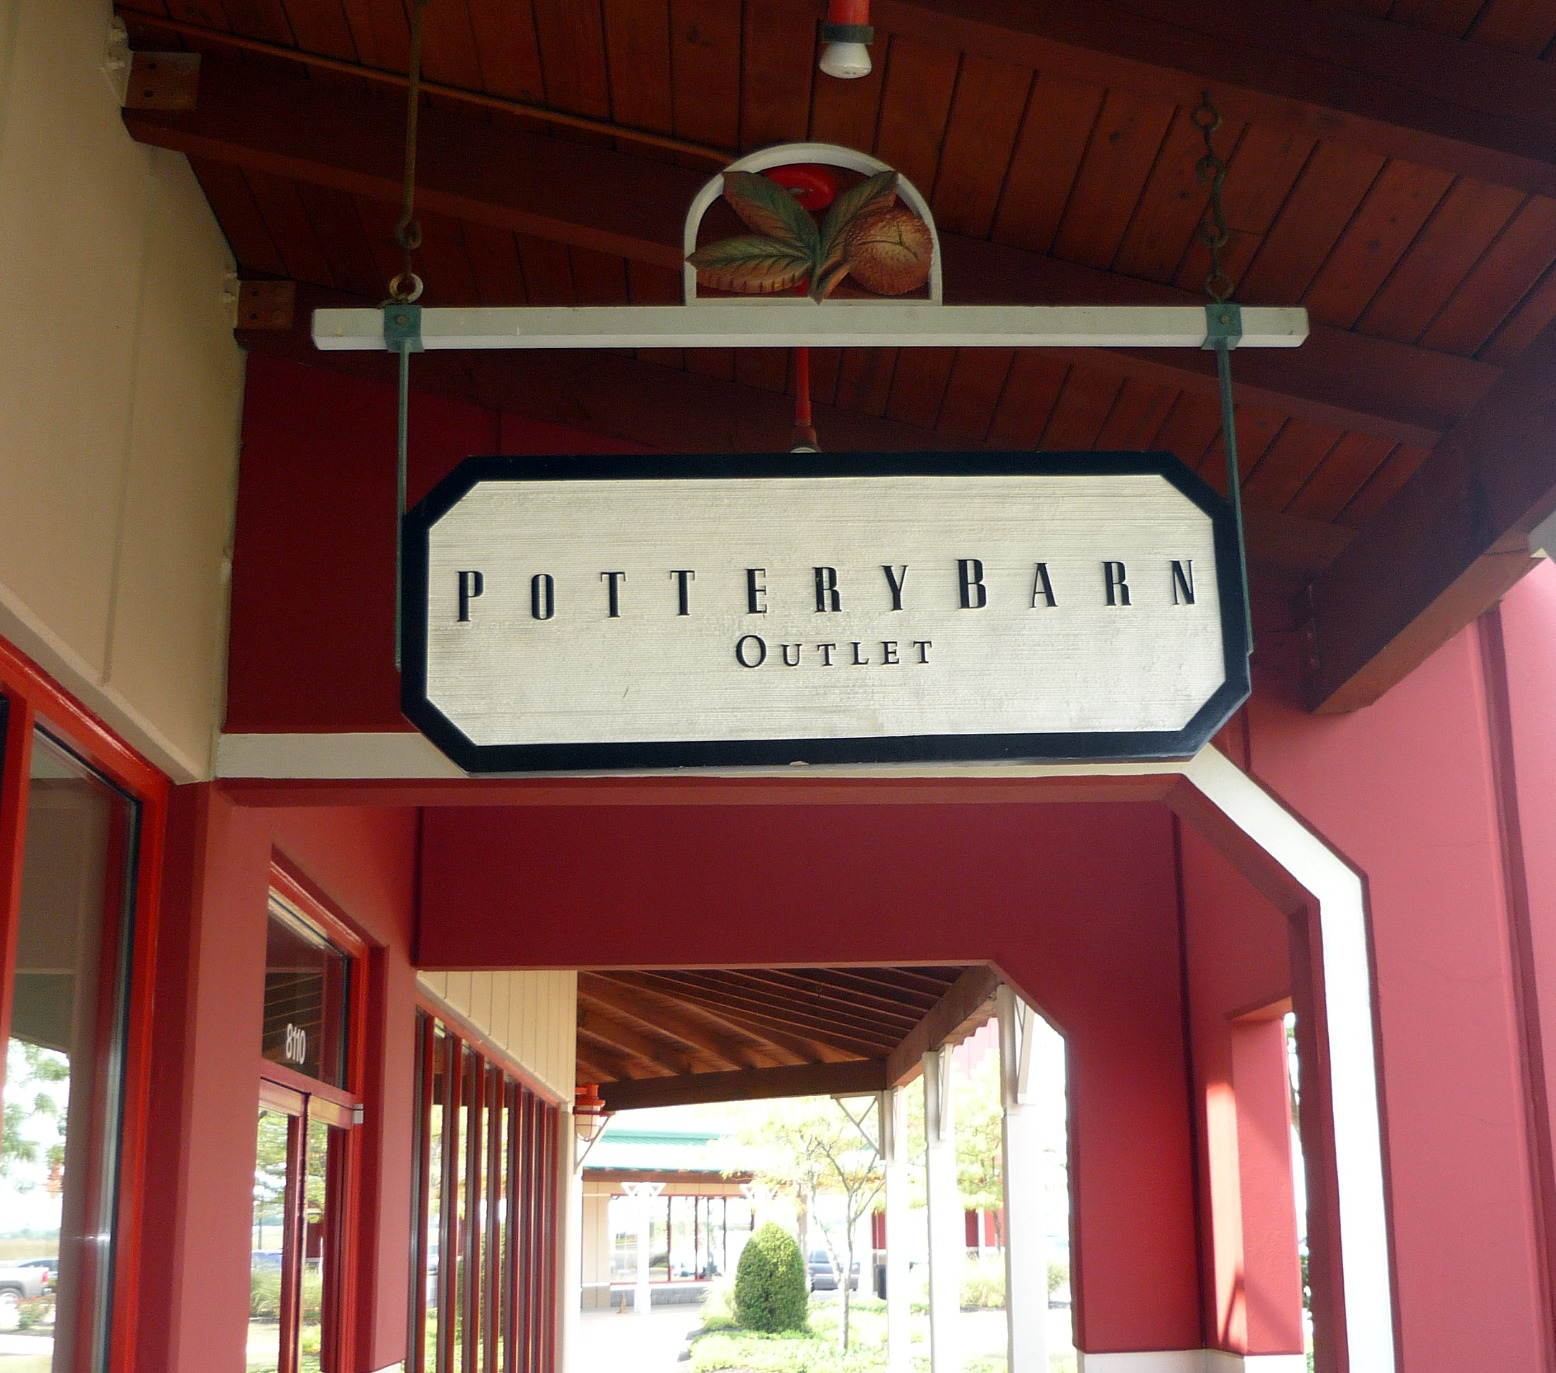 Midwest Cottage & Finds: How To Shop At A Pottery Barn Outlet